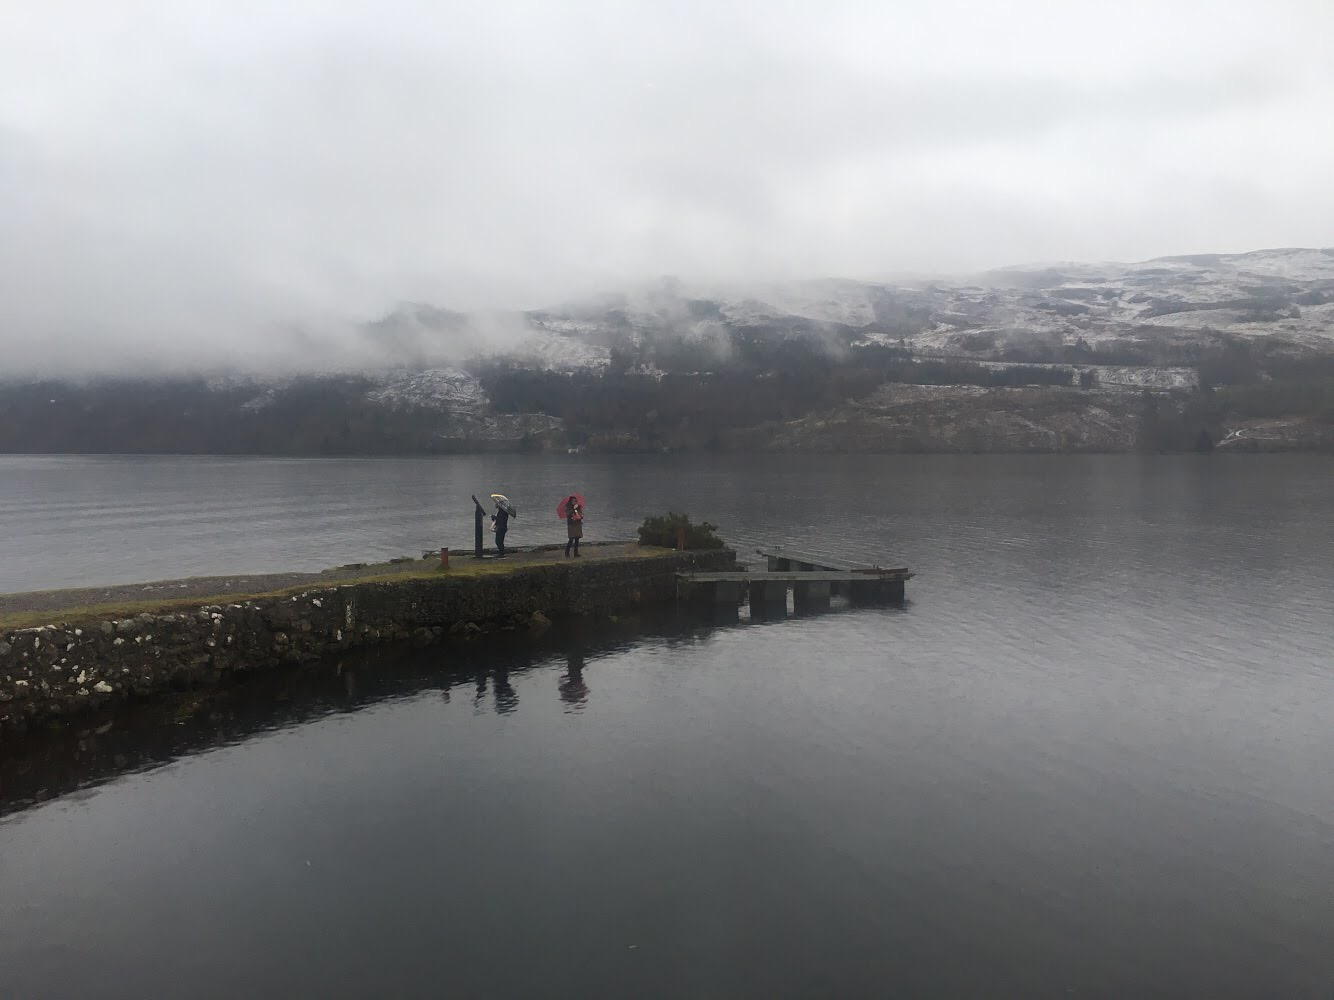 searching for Nessie at Loch Ness, Scotland, UK